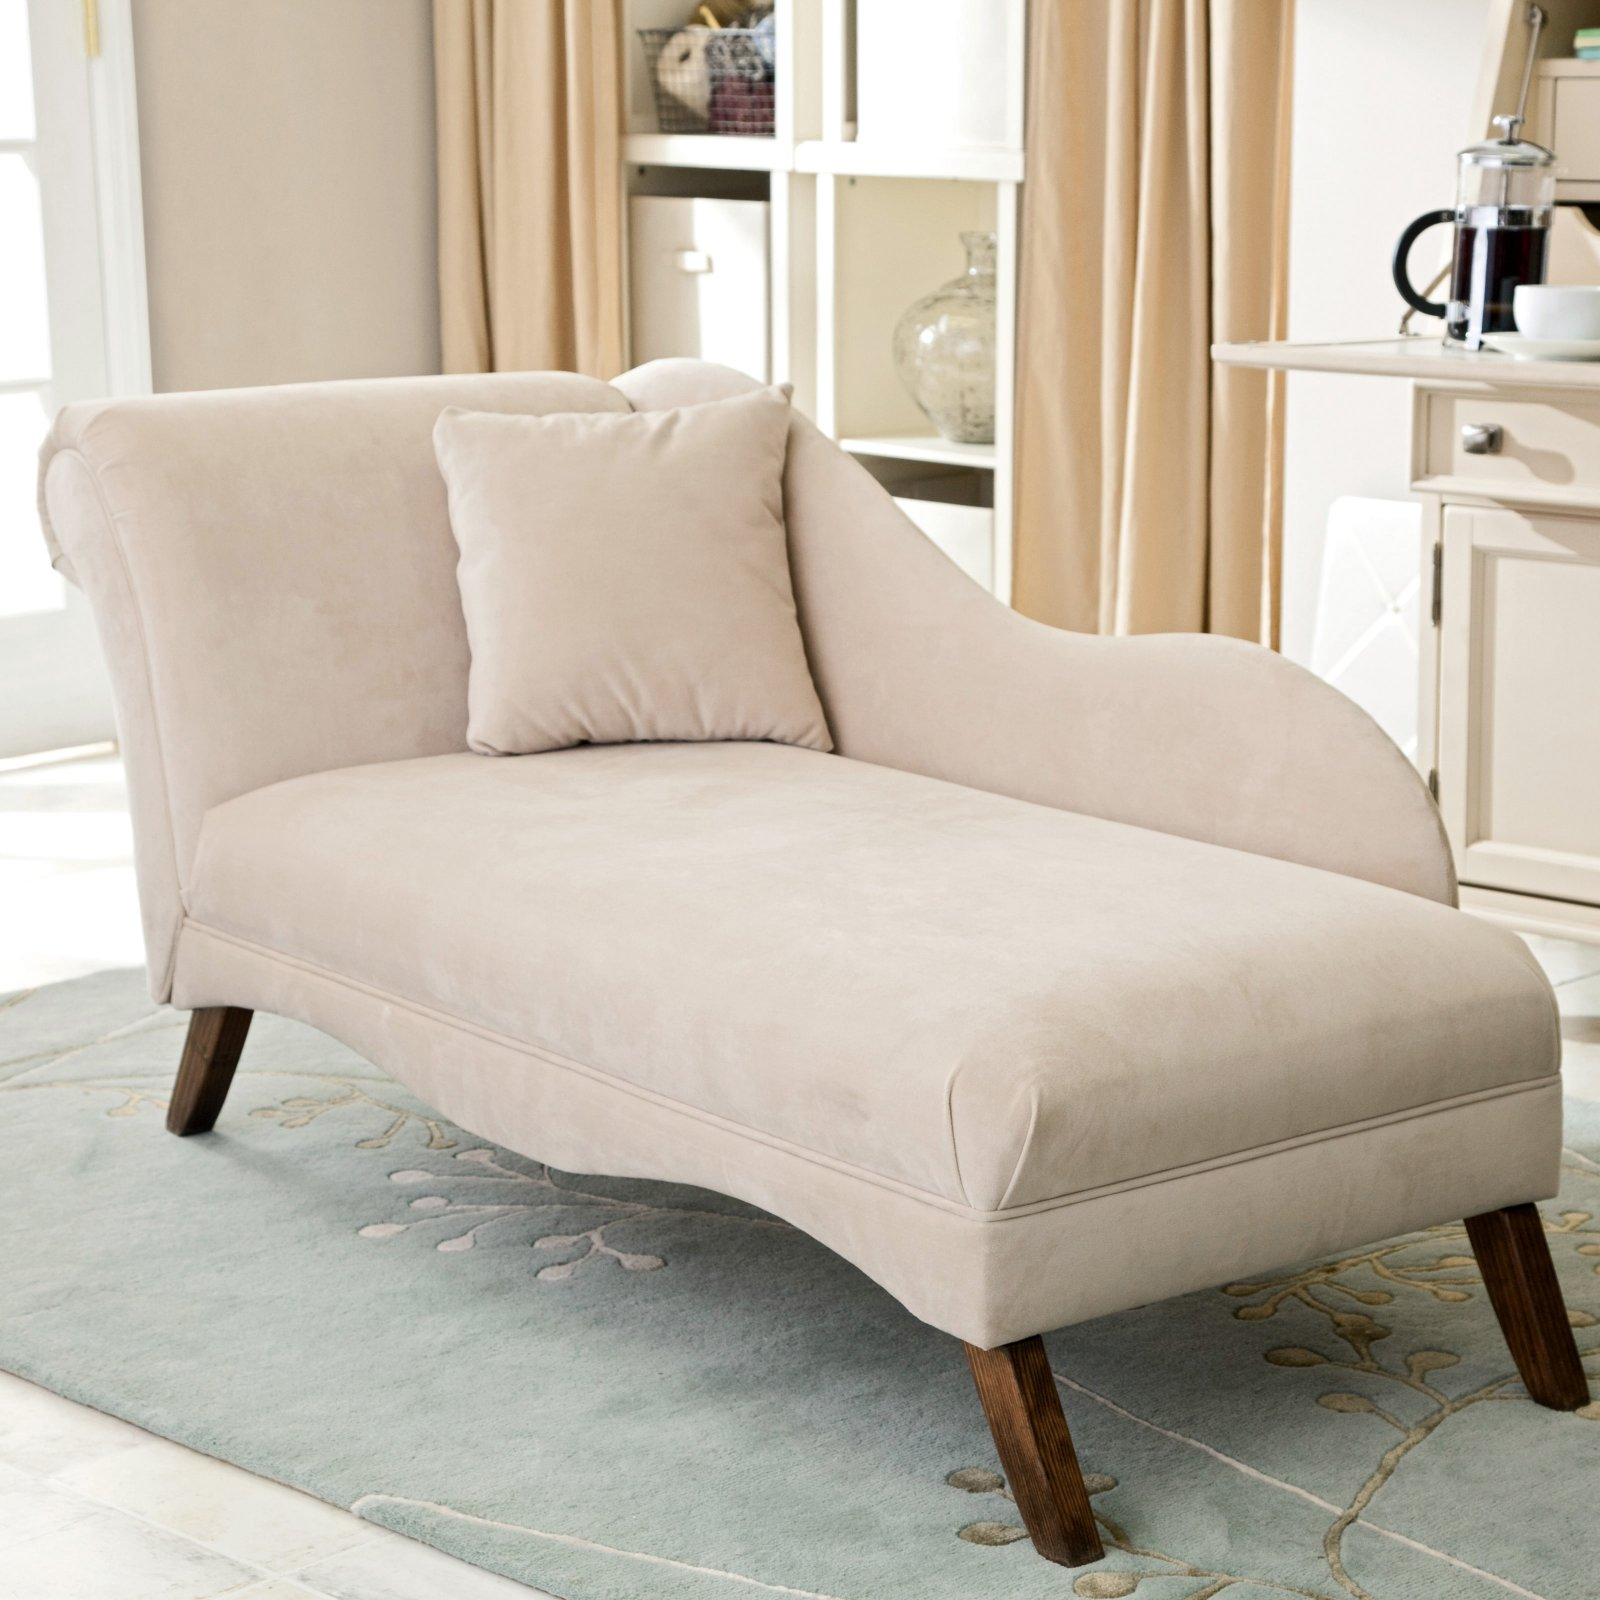 Image of: Modern Indoor Chaise Lounge Chair